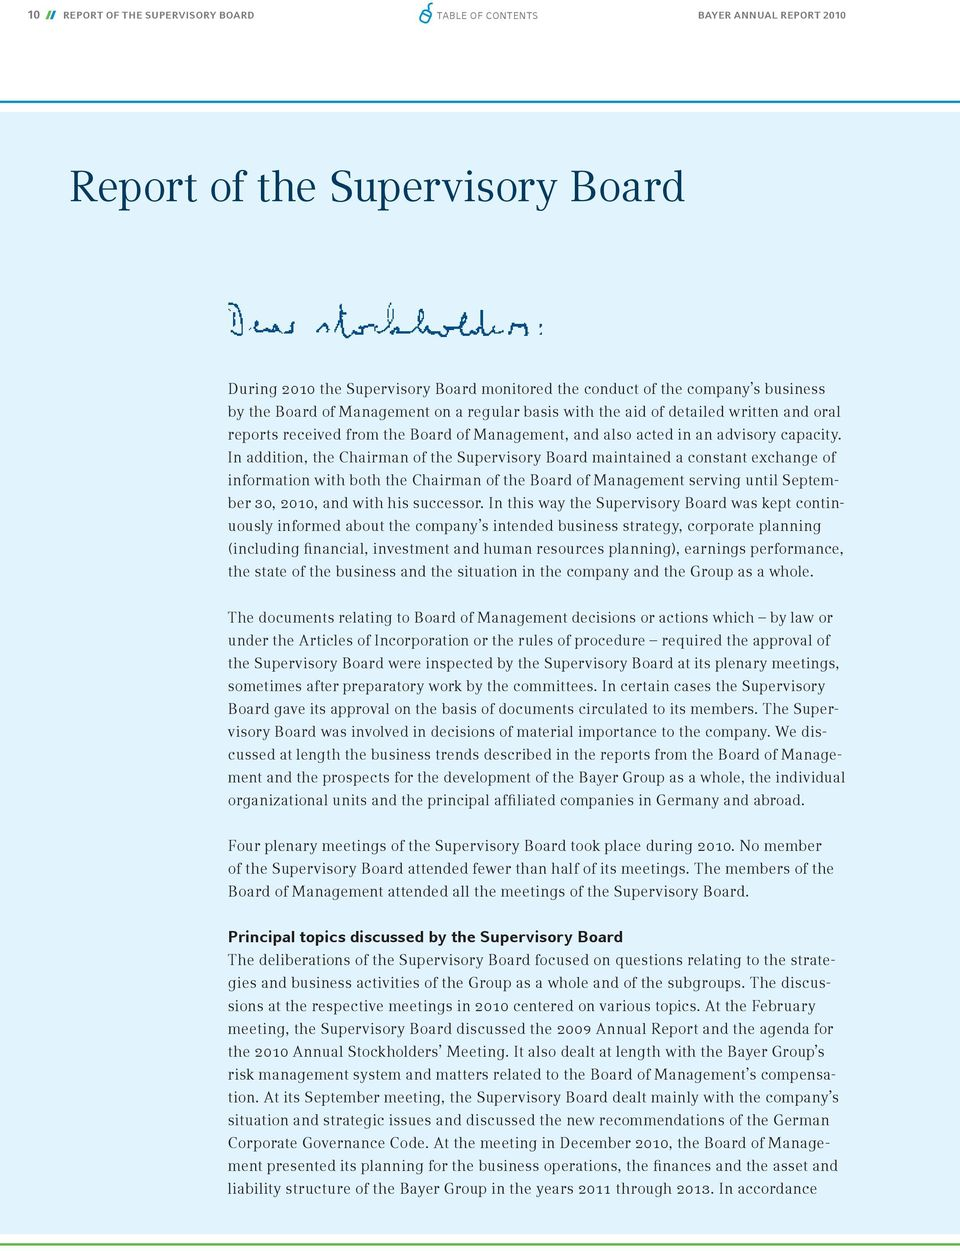 In addition, the Chairman of the Supervisory Board maintained a constant exchange of information with both the Chairman of the Board of Management serving until September 30, 2010, and with his